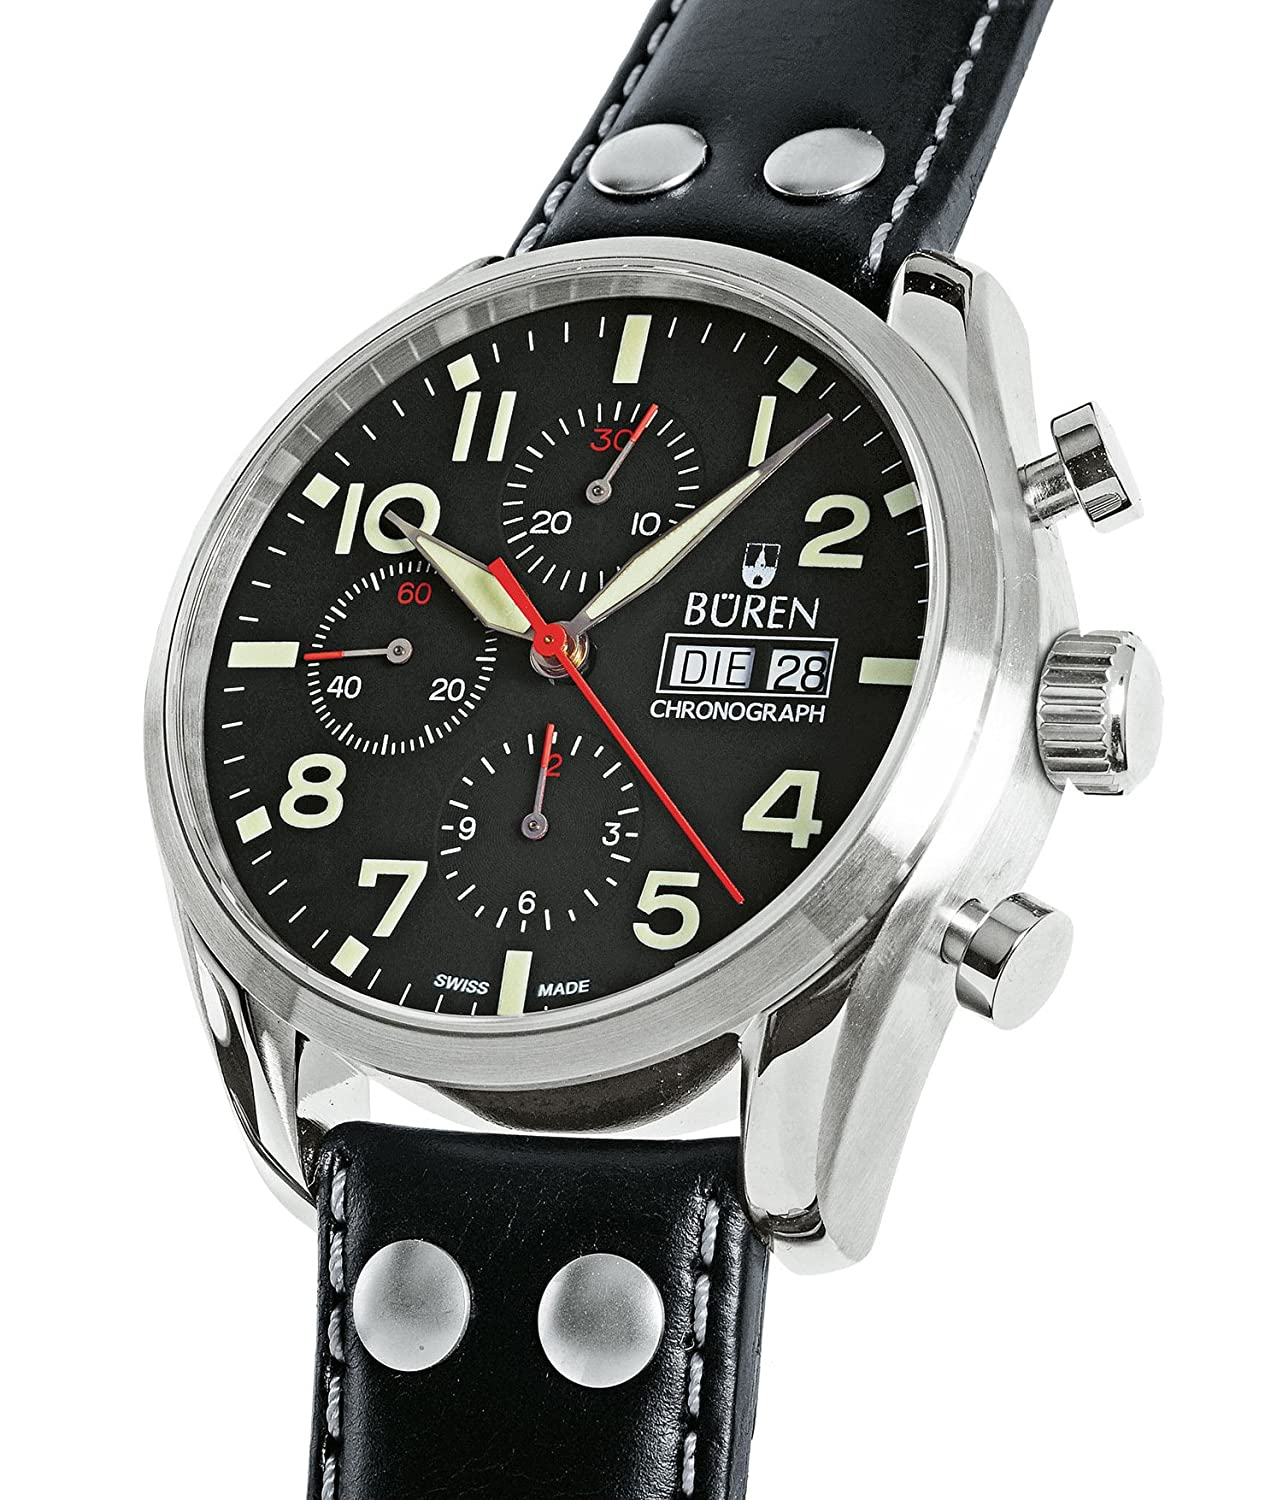 BÜREN Flieger-Chronograph - Herrenuhr - Ø 44 mm